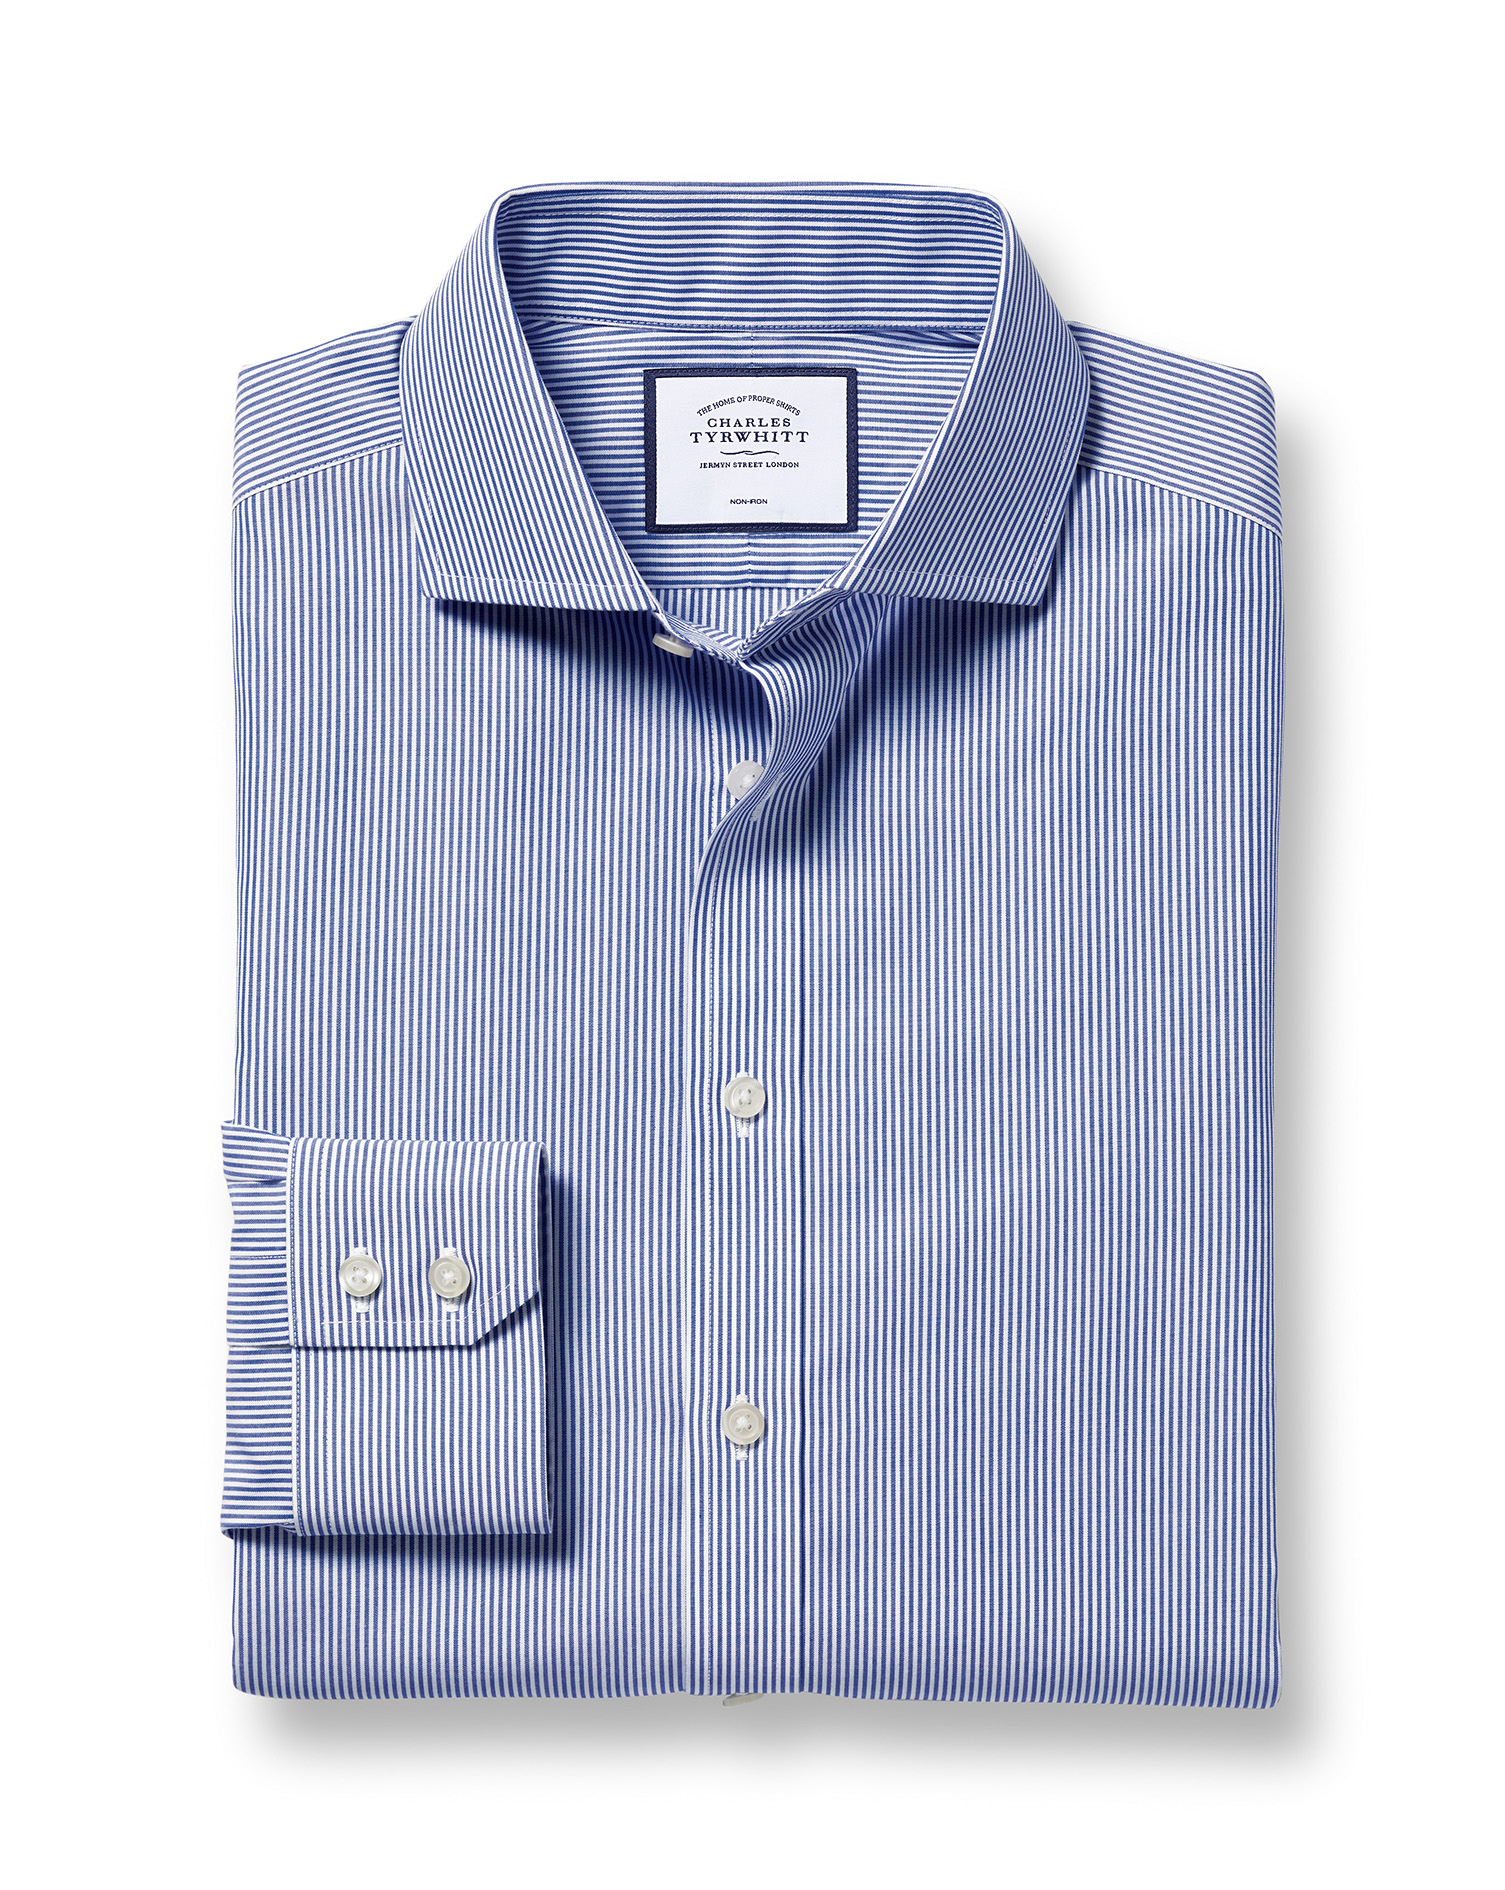 Slim Fit Non-Iron Cutaway Navy Bengal Stripe Cotton Formal Shirt Single Cuff Size 16.5/38 by Charles